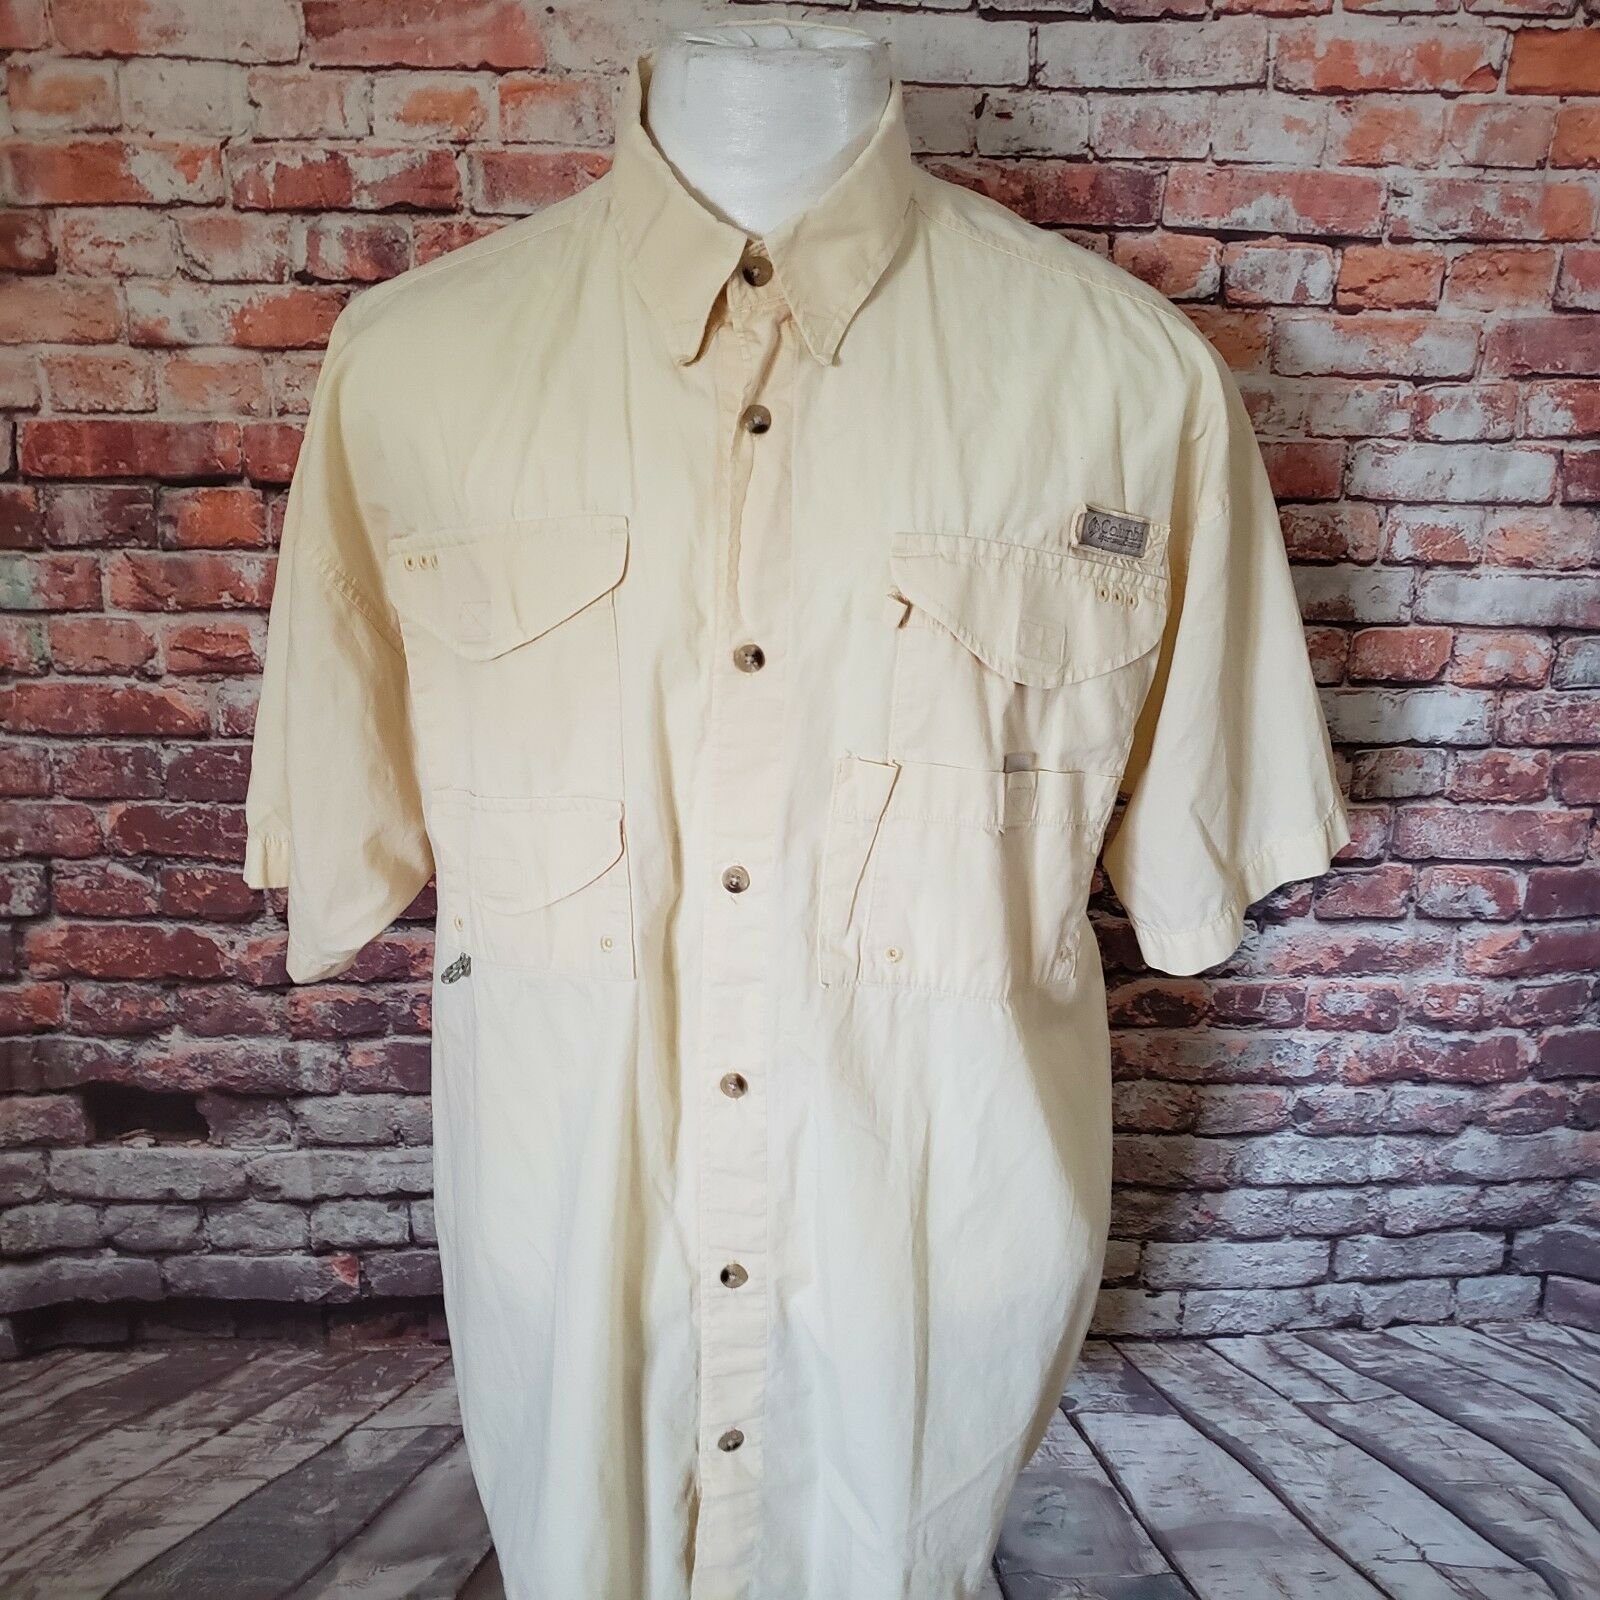 COLUMBIA PFG MEN'S MESH LINED COTTON VENTED SHORT SLEEVE SHIRT SIZE XL A70-22